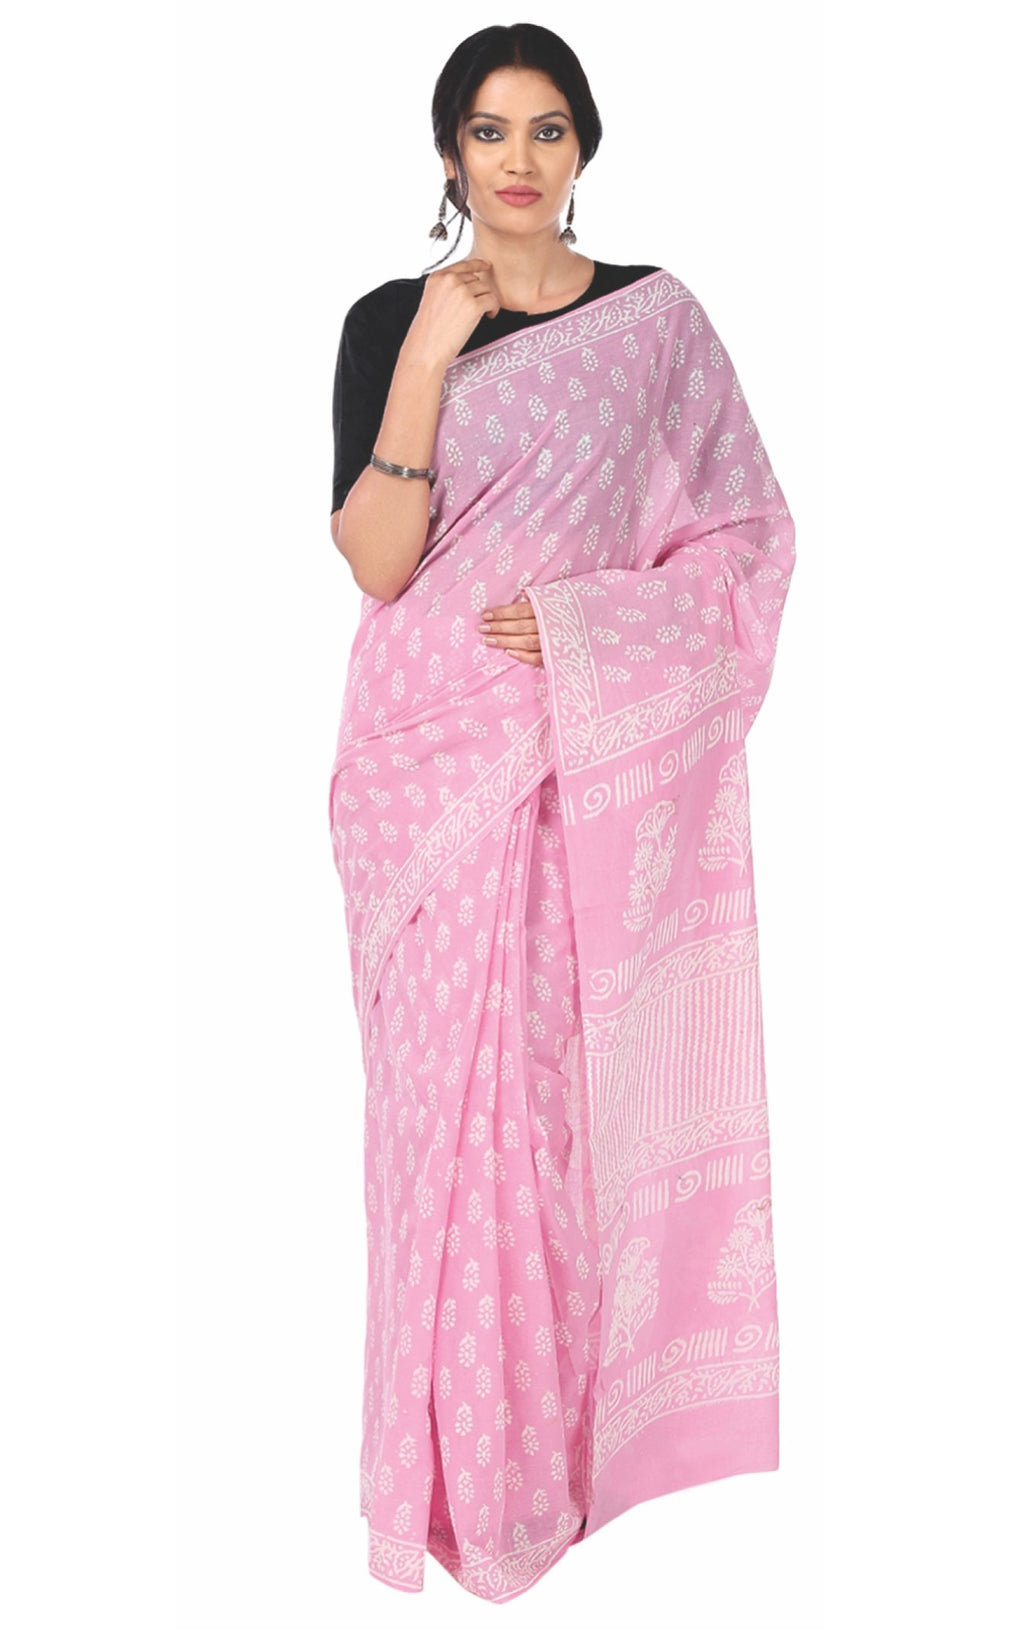 Pink & White Colored Dabu Hand Block Print Handcrafted Cotton Saree-Saree-Kalakari India-BAPASA0037-Cotton, Dabu, Geographical Indication, Hand Blocks, Hand Crafted, Heritage Prints, Sarees, Sustainable Fabrics-[Linen,Ethnic,wear,Fashionista,Handloom,Handicraft,Indigo,blockprint,block,print,Cotton,Chanderi,Blue, latest,classy,party,bollywood,trendy,summer,style,traditional,formal,elegant,unique,style,hand,block,print, dabu,booti,gift,present,glamorous,affordable,collectible,Sari,Saree,printed, h